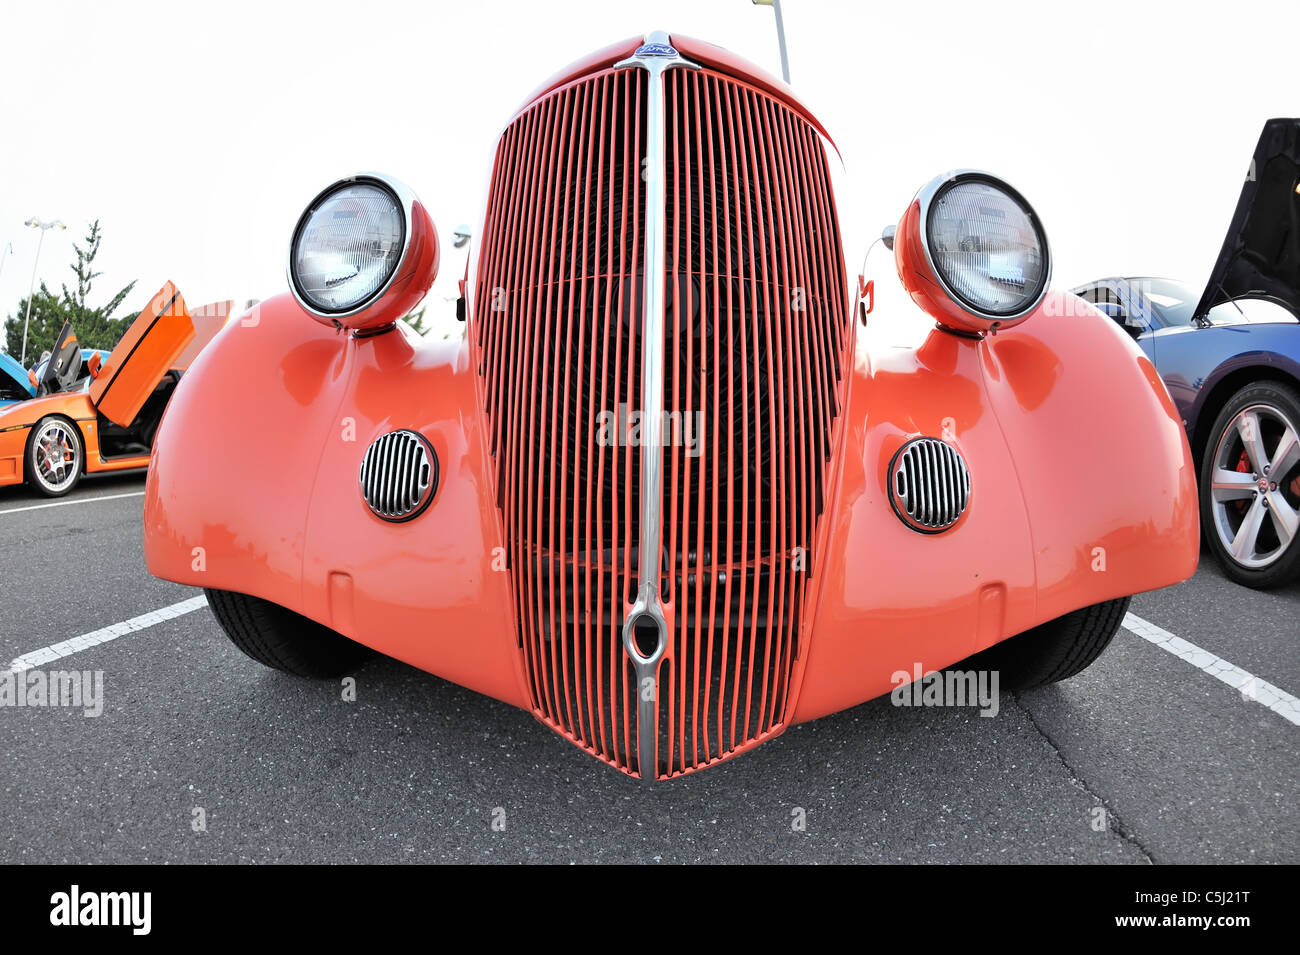 Antique Car, orange Ford with front tall chrome grille, headlamps, seen from ground level, Custom Classic Car Meet - Stock Image